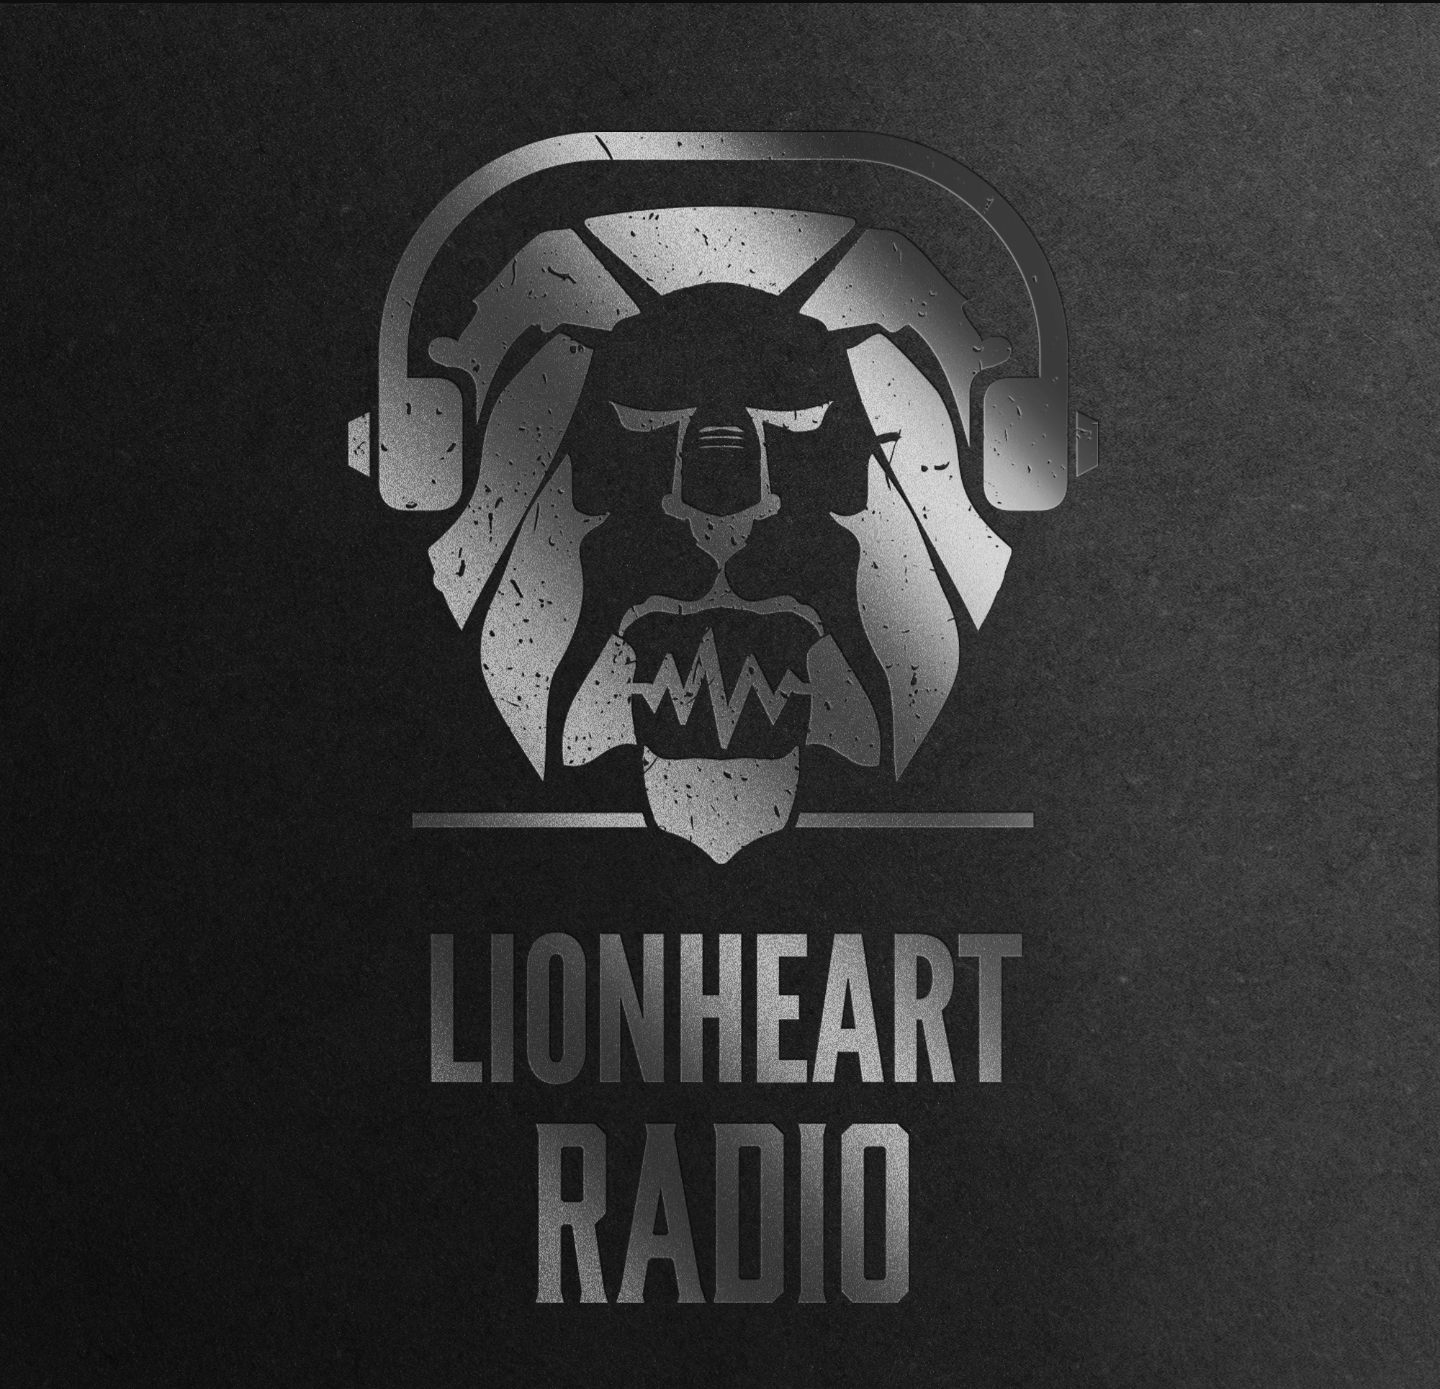 In September 2016, Kael was featured on the LionHeart Radio Show with Rick Alexander from Creatine Coffee Co. and LuaVive Supplements.